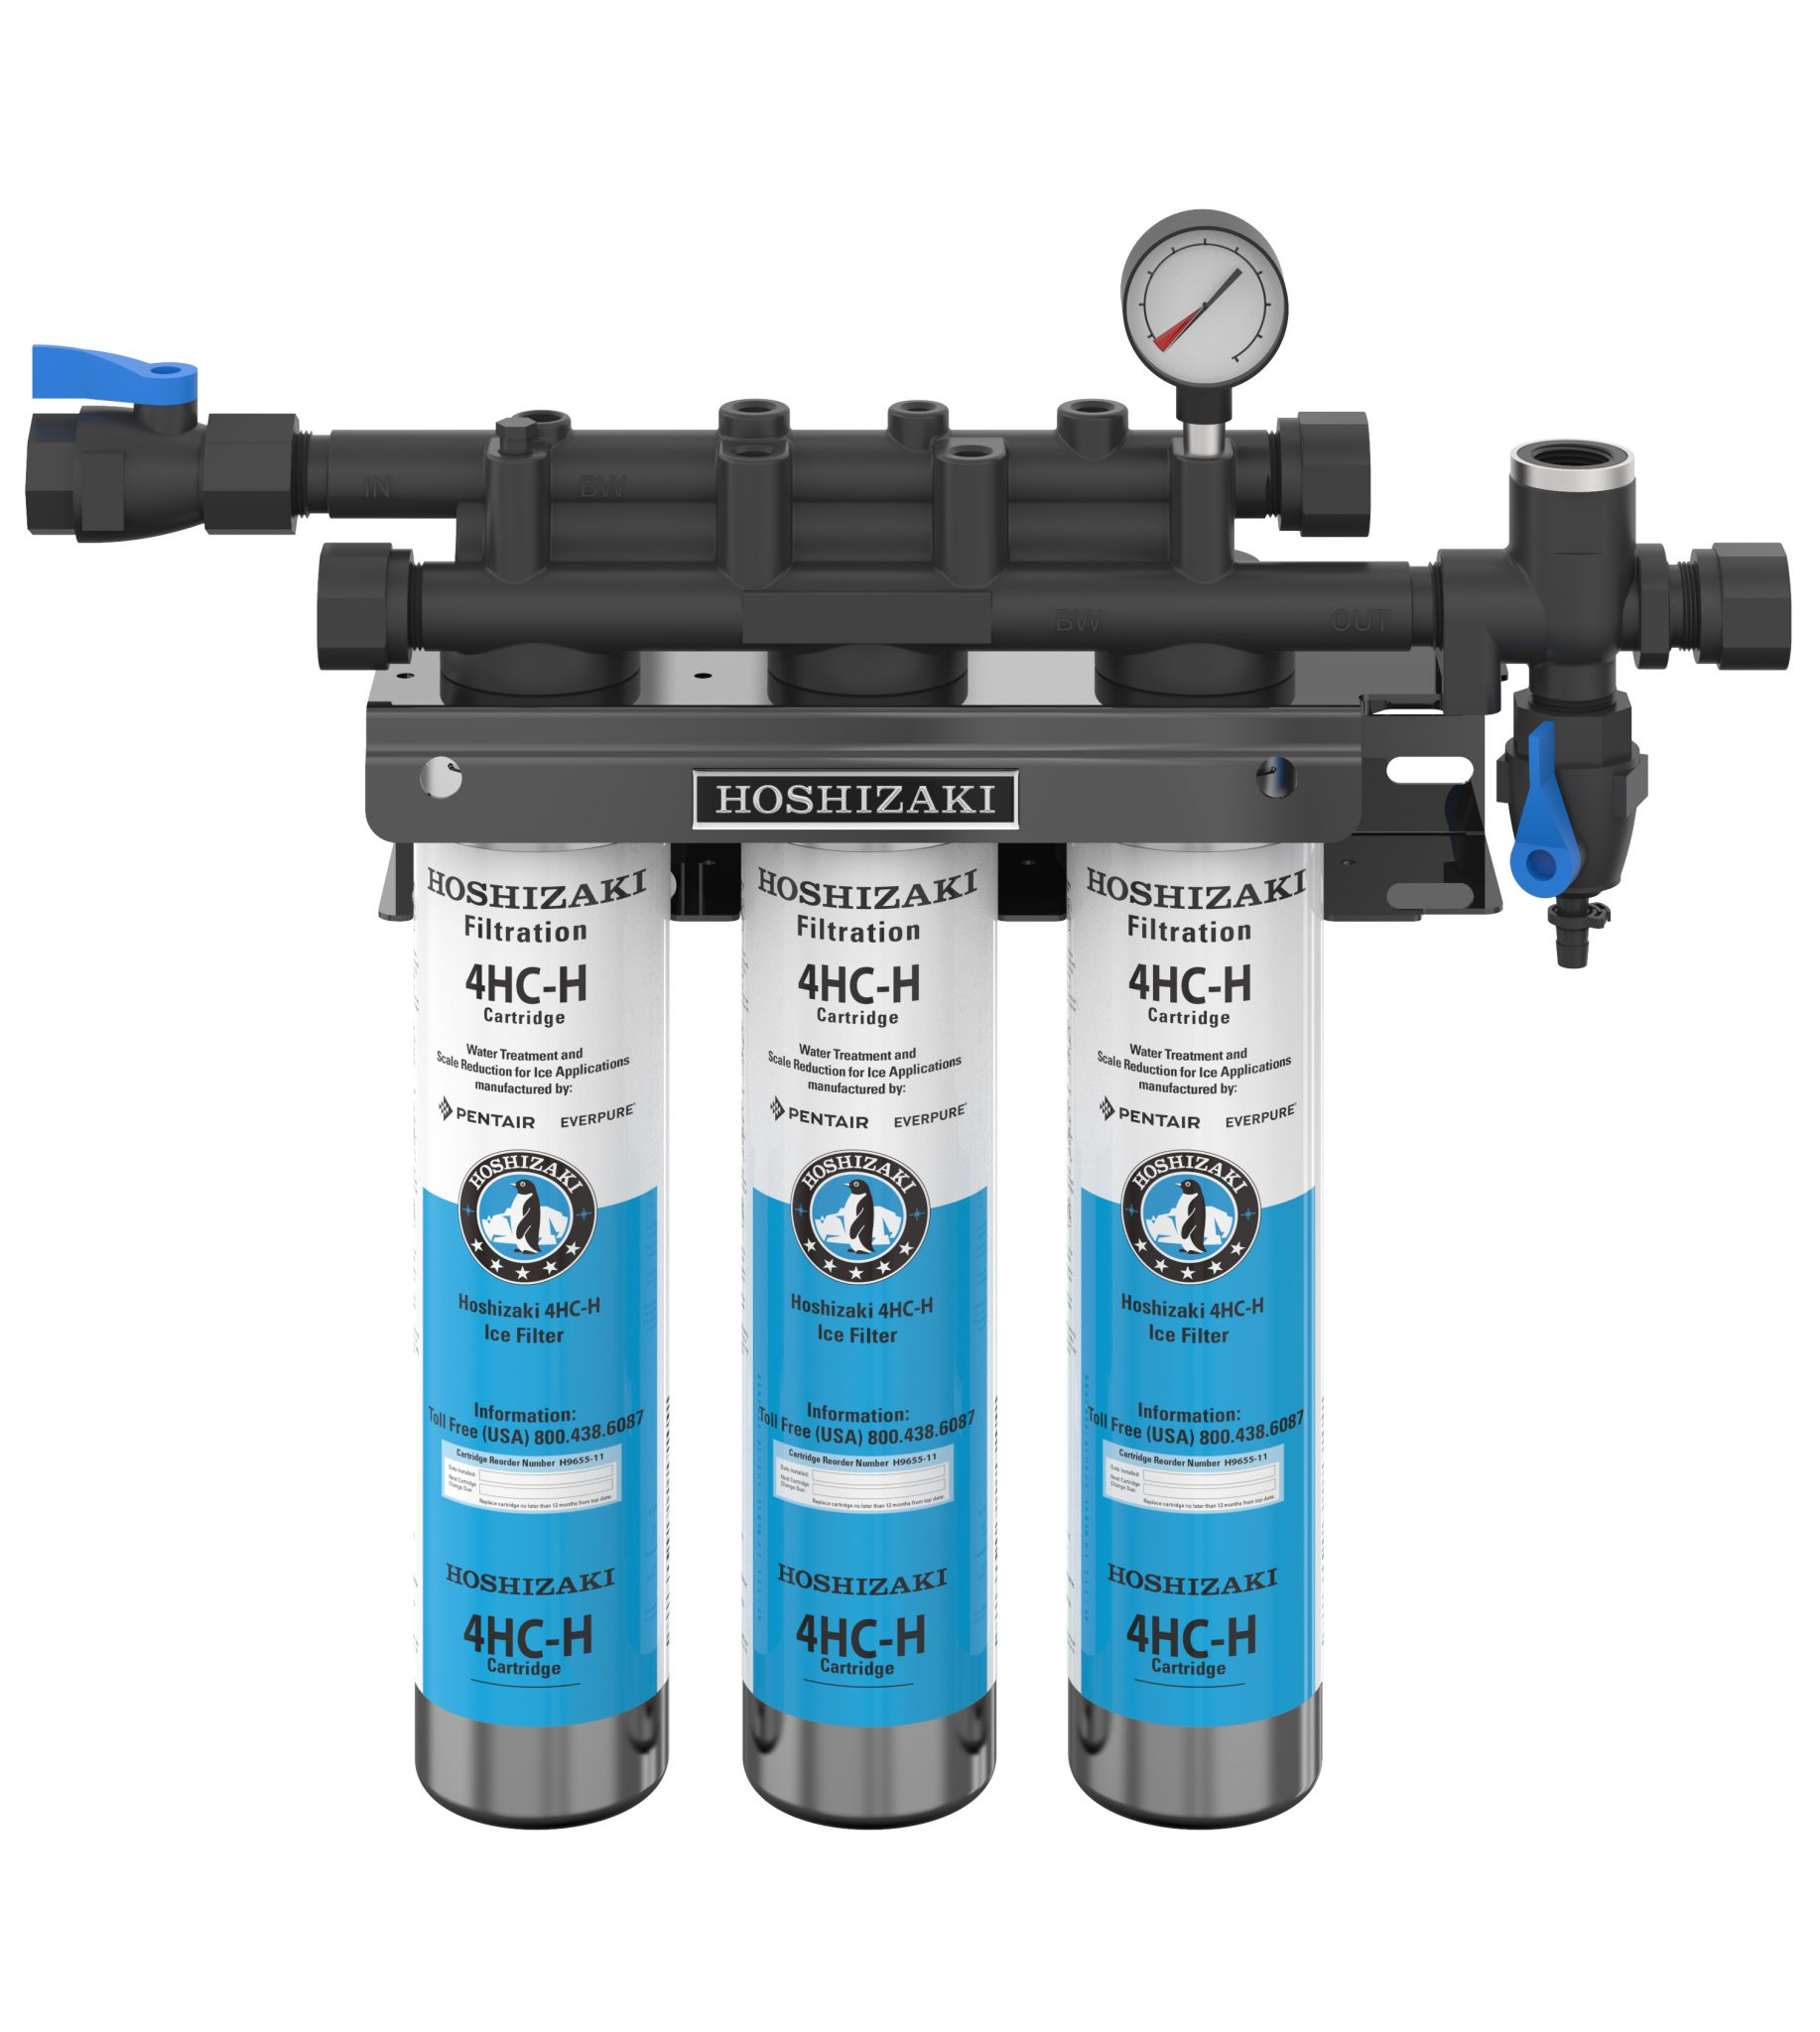 Hoshizaki Water Filter Systems Cover Image